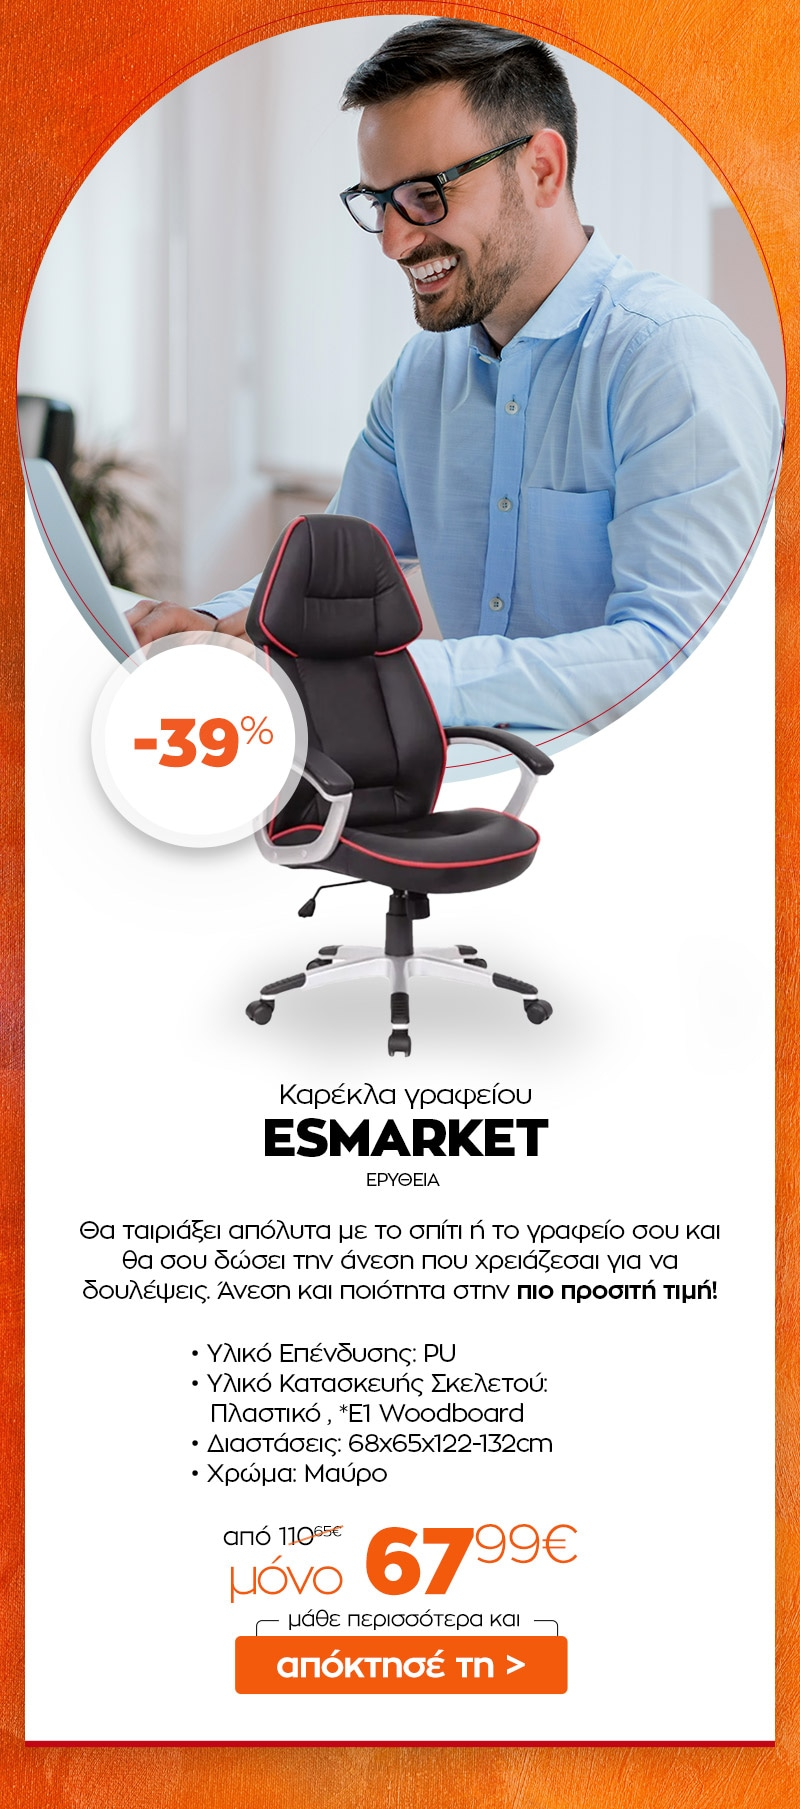 05_ESMARKET_chair